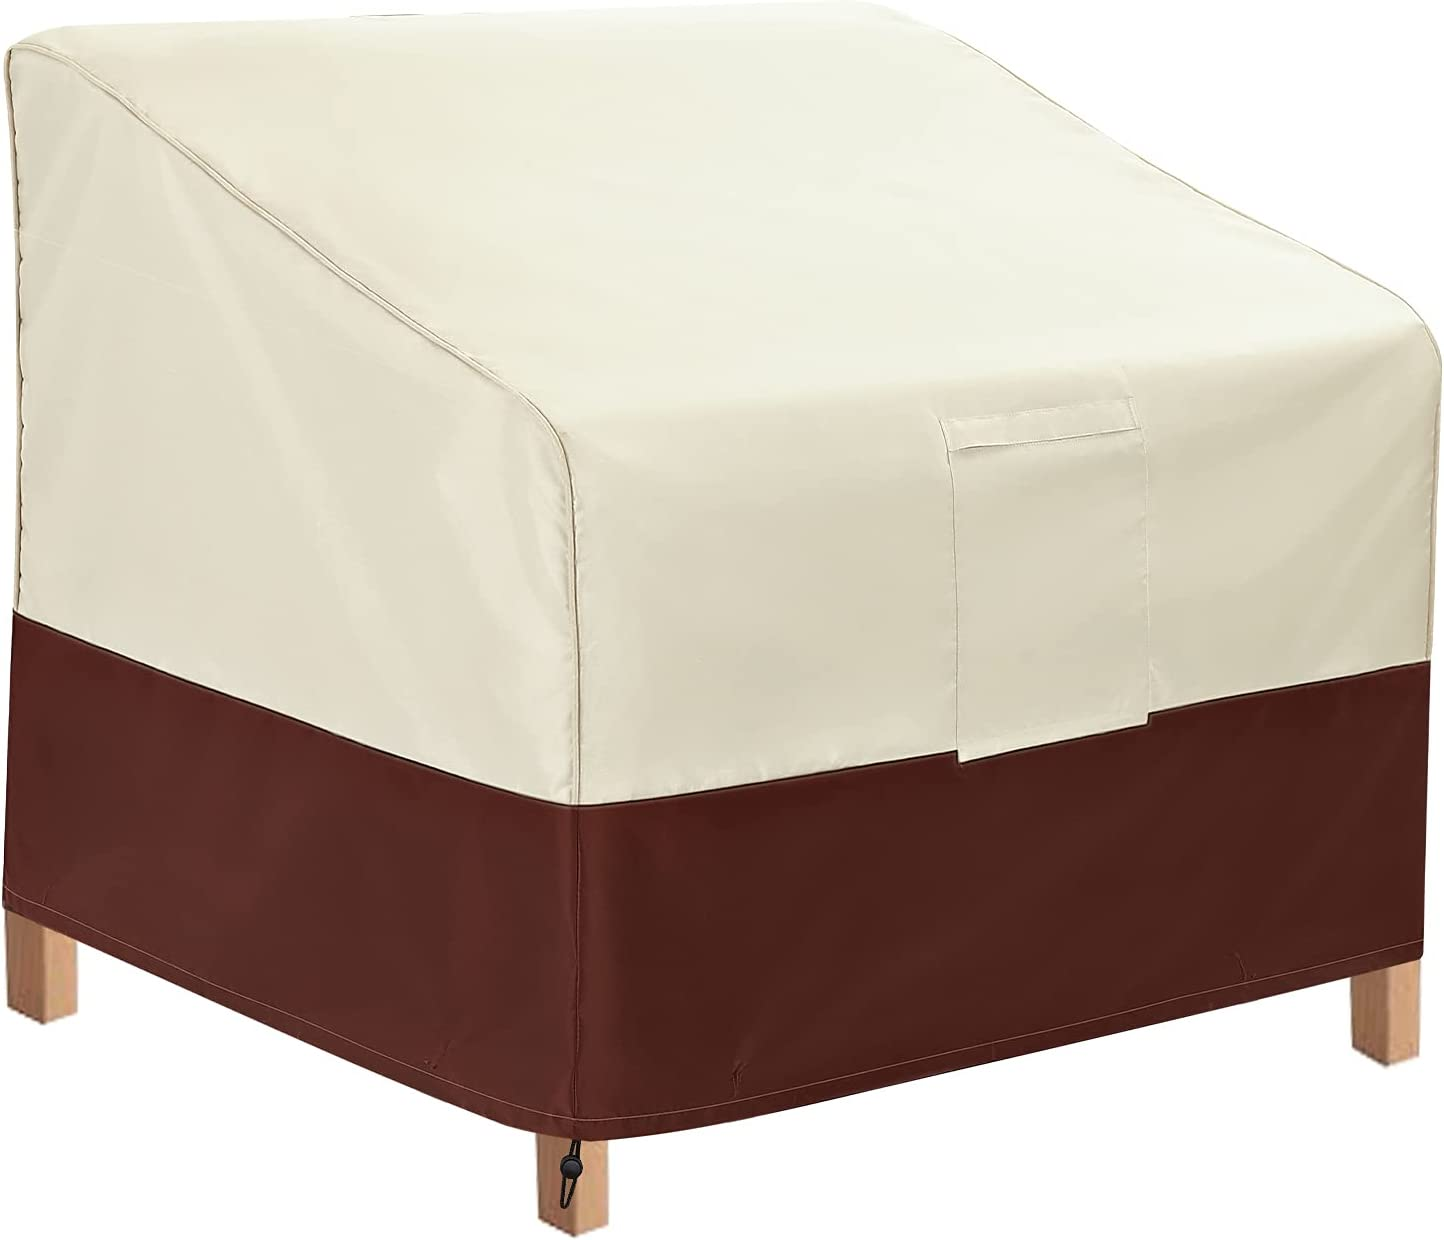 Outdoor Patio Chair Covers Waterproof Outside Furniture service Tulsa Mall Wi Lawn